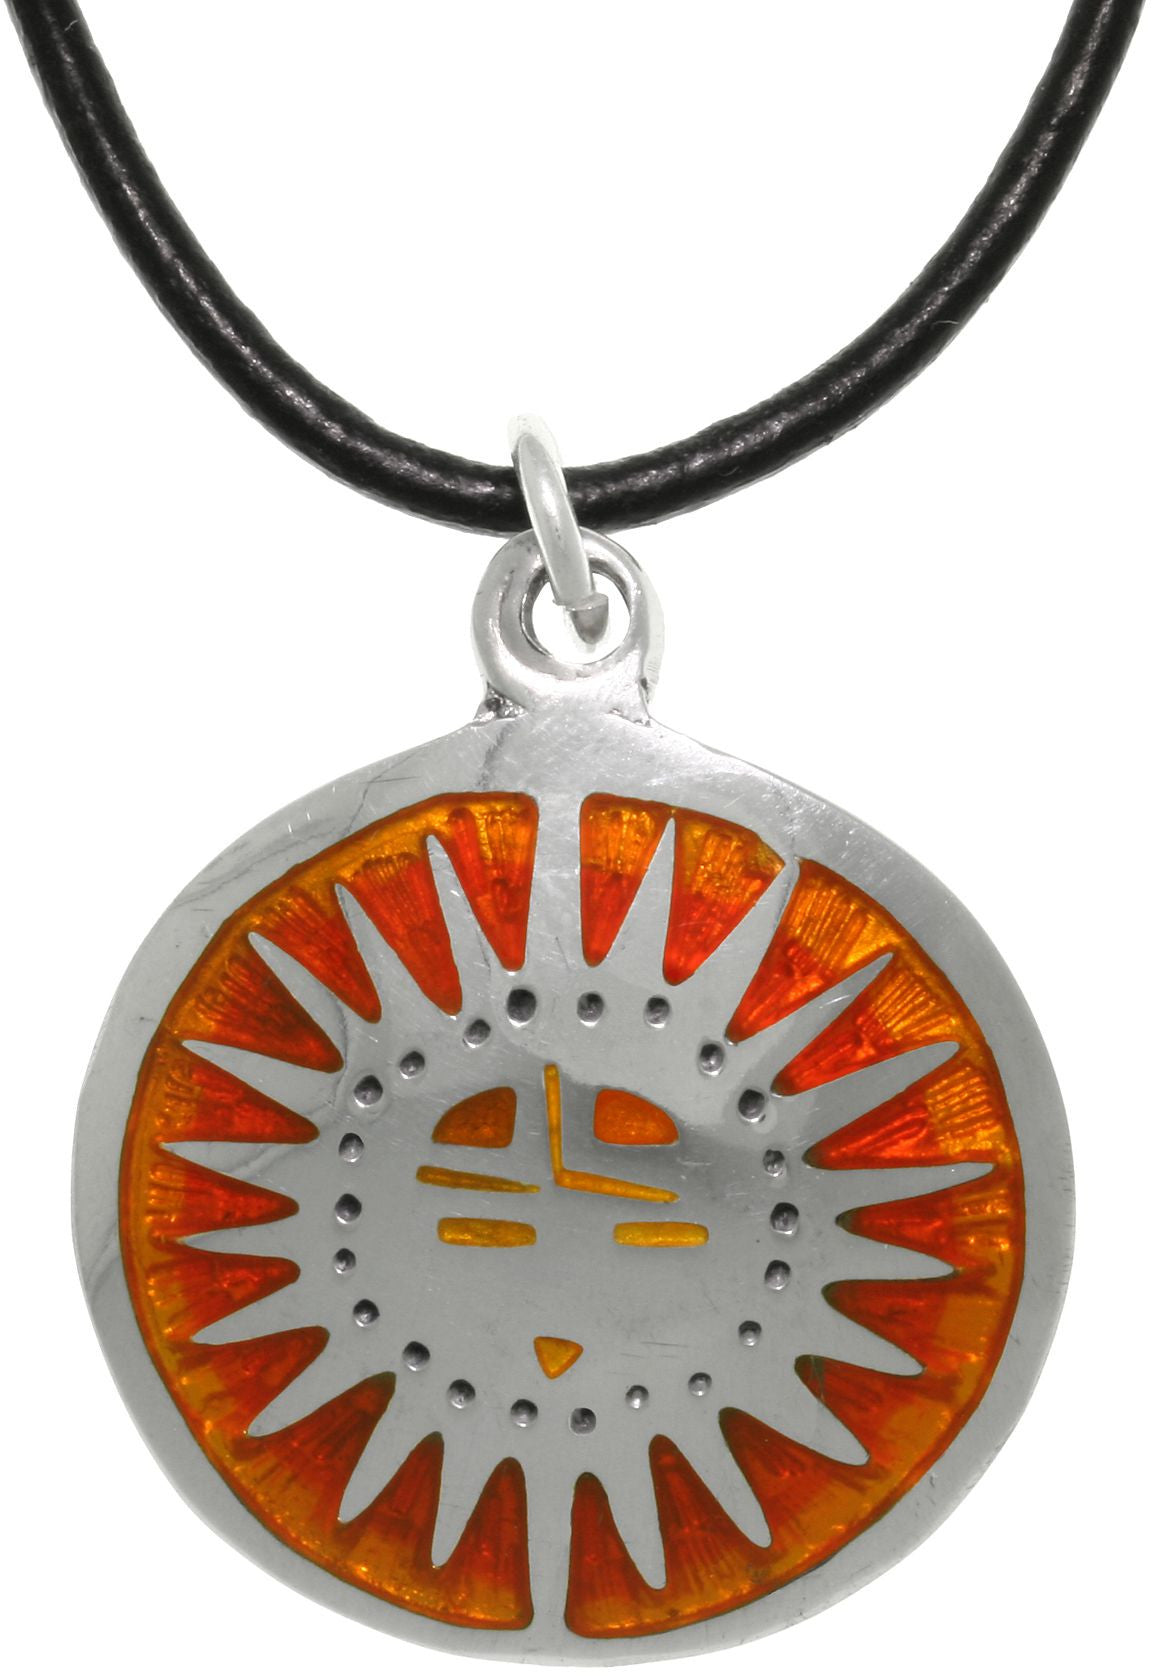 Jewelry Trends Mexican Sun Rise Pewter Celestial Pendant on Black Leather Cord Necklace